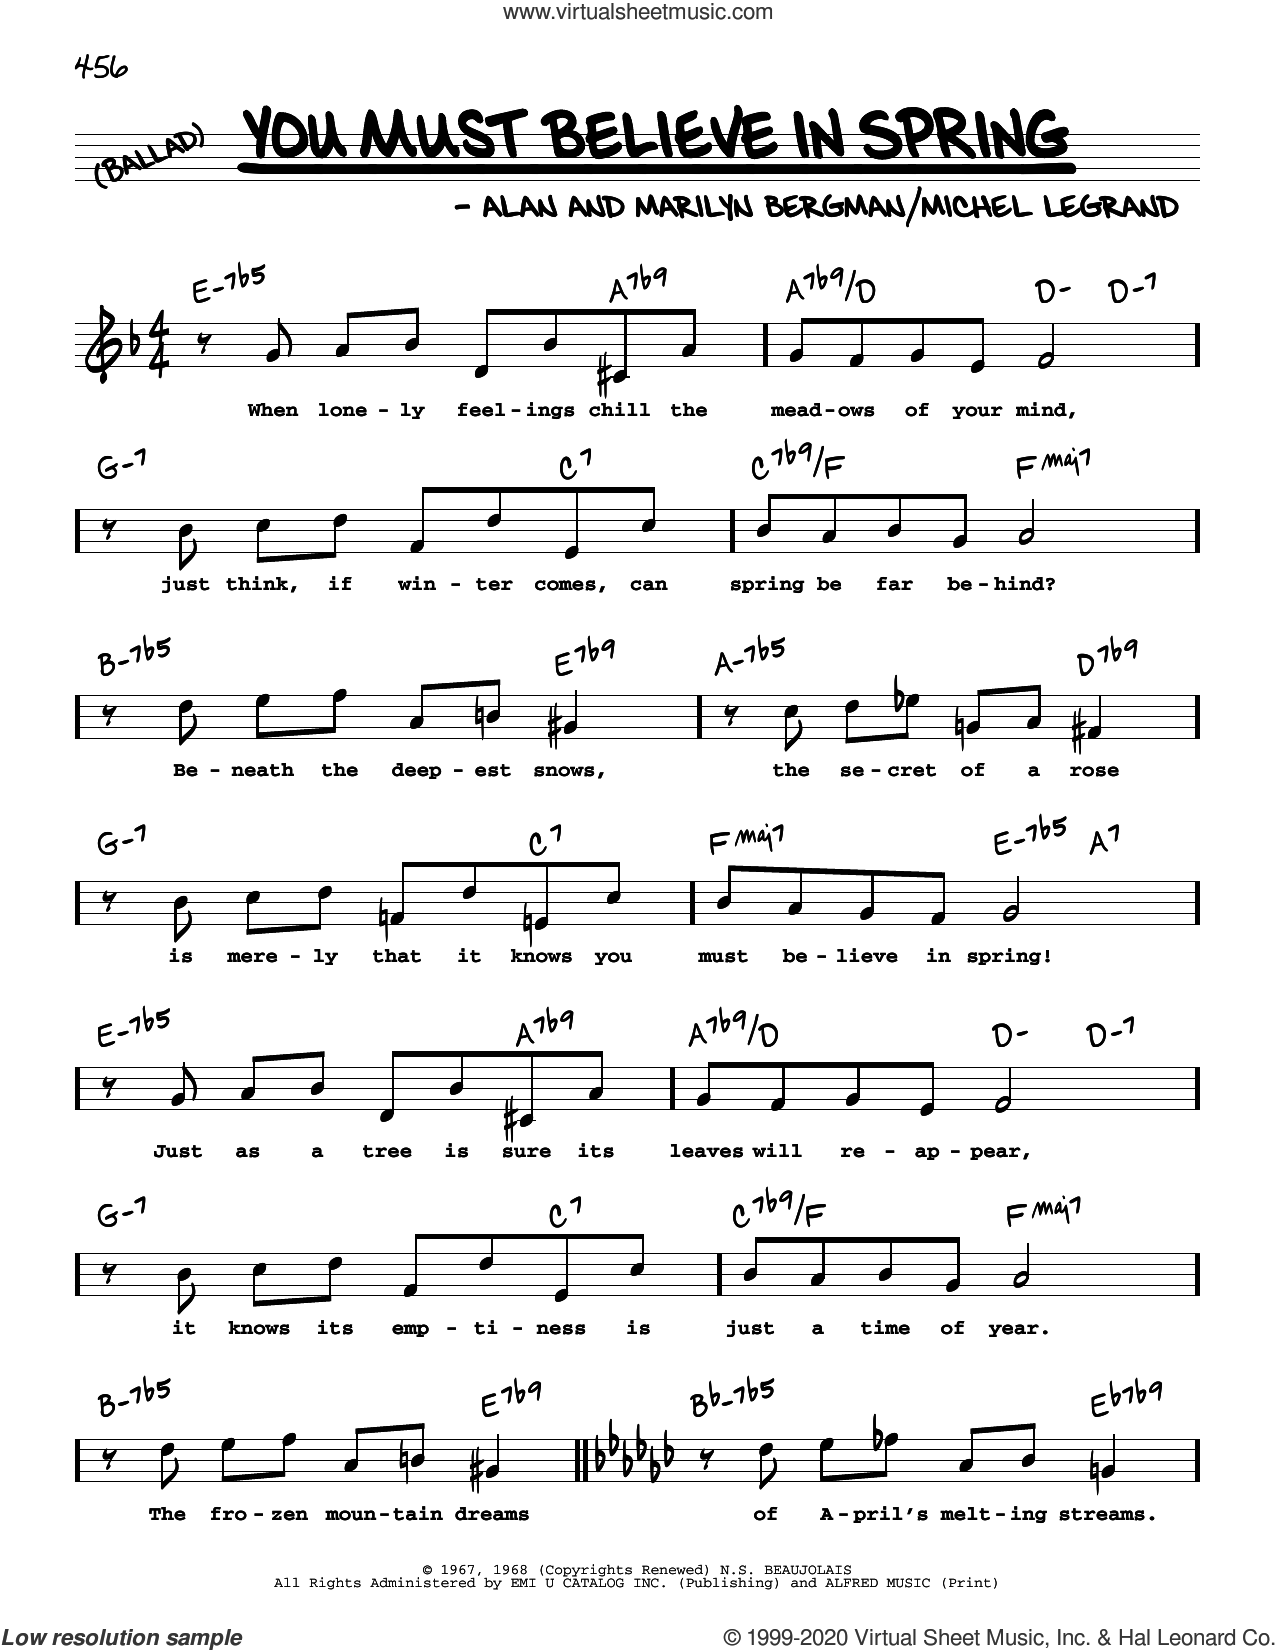 You Must Believe In Spring (High Voice) sheet music for voice and other instruments (high voice) by Alan Bergman, Marilyn Bergman and Michel LeGrand, intermediate skill level